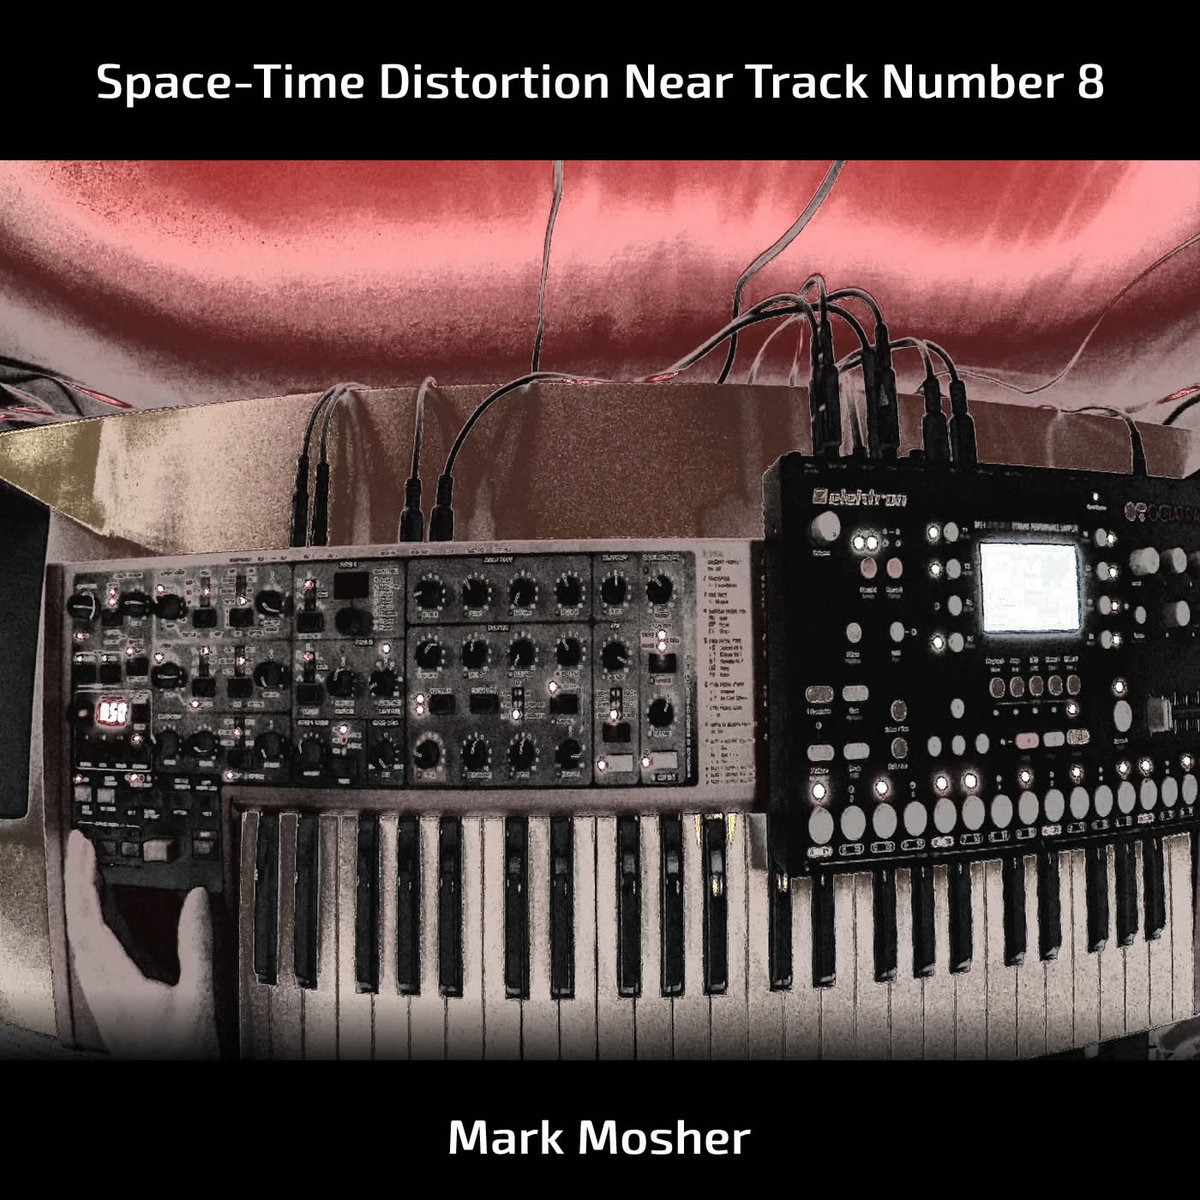 Space-Time Distortion Near Track Number 8 by Mark Mosher